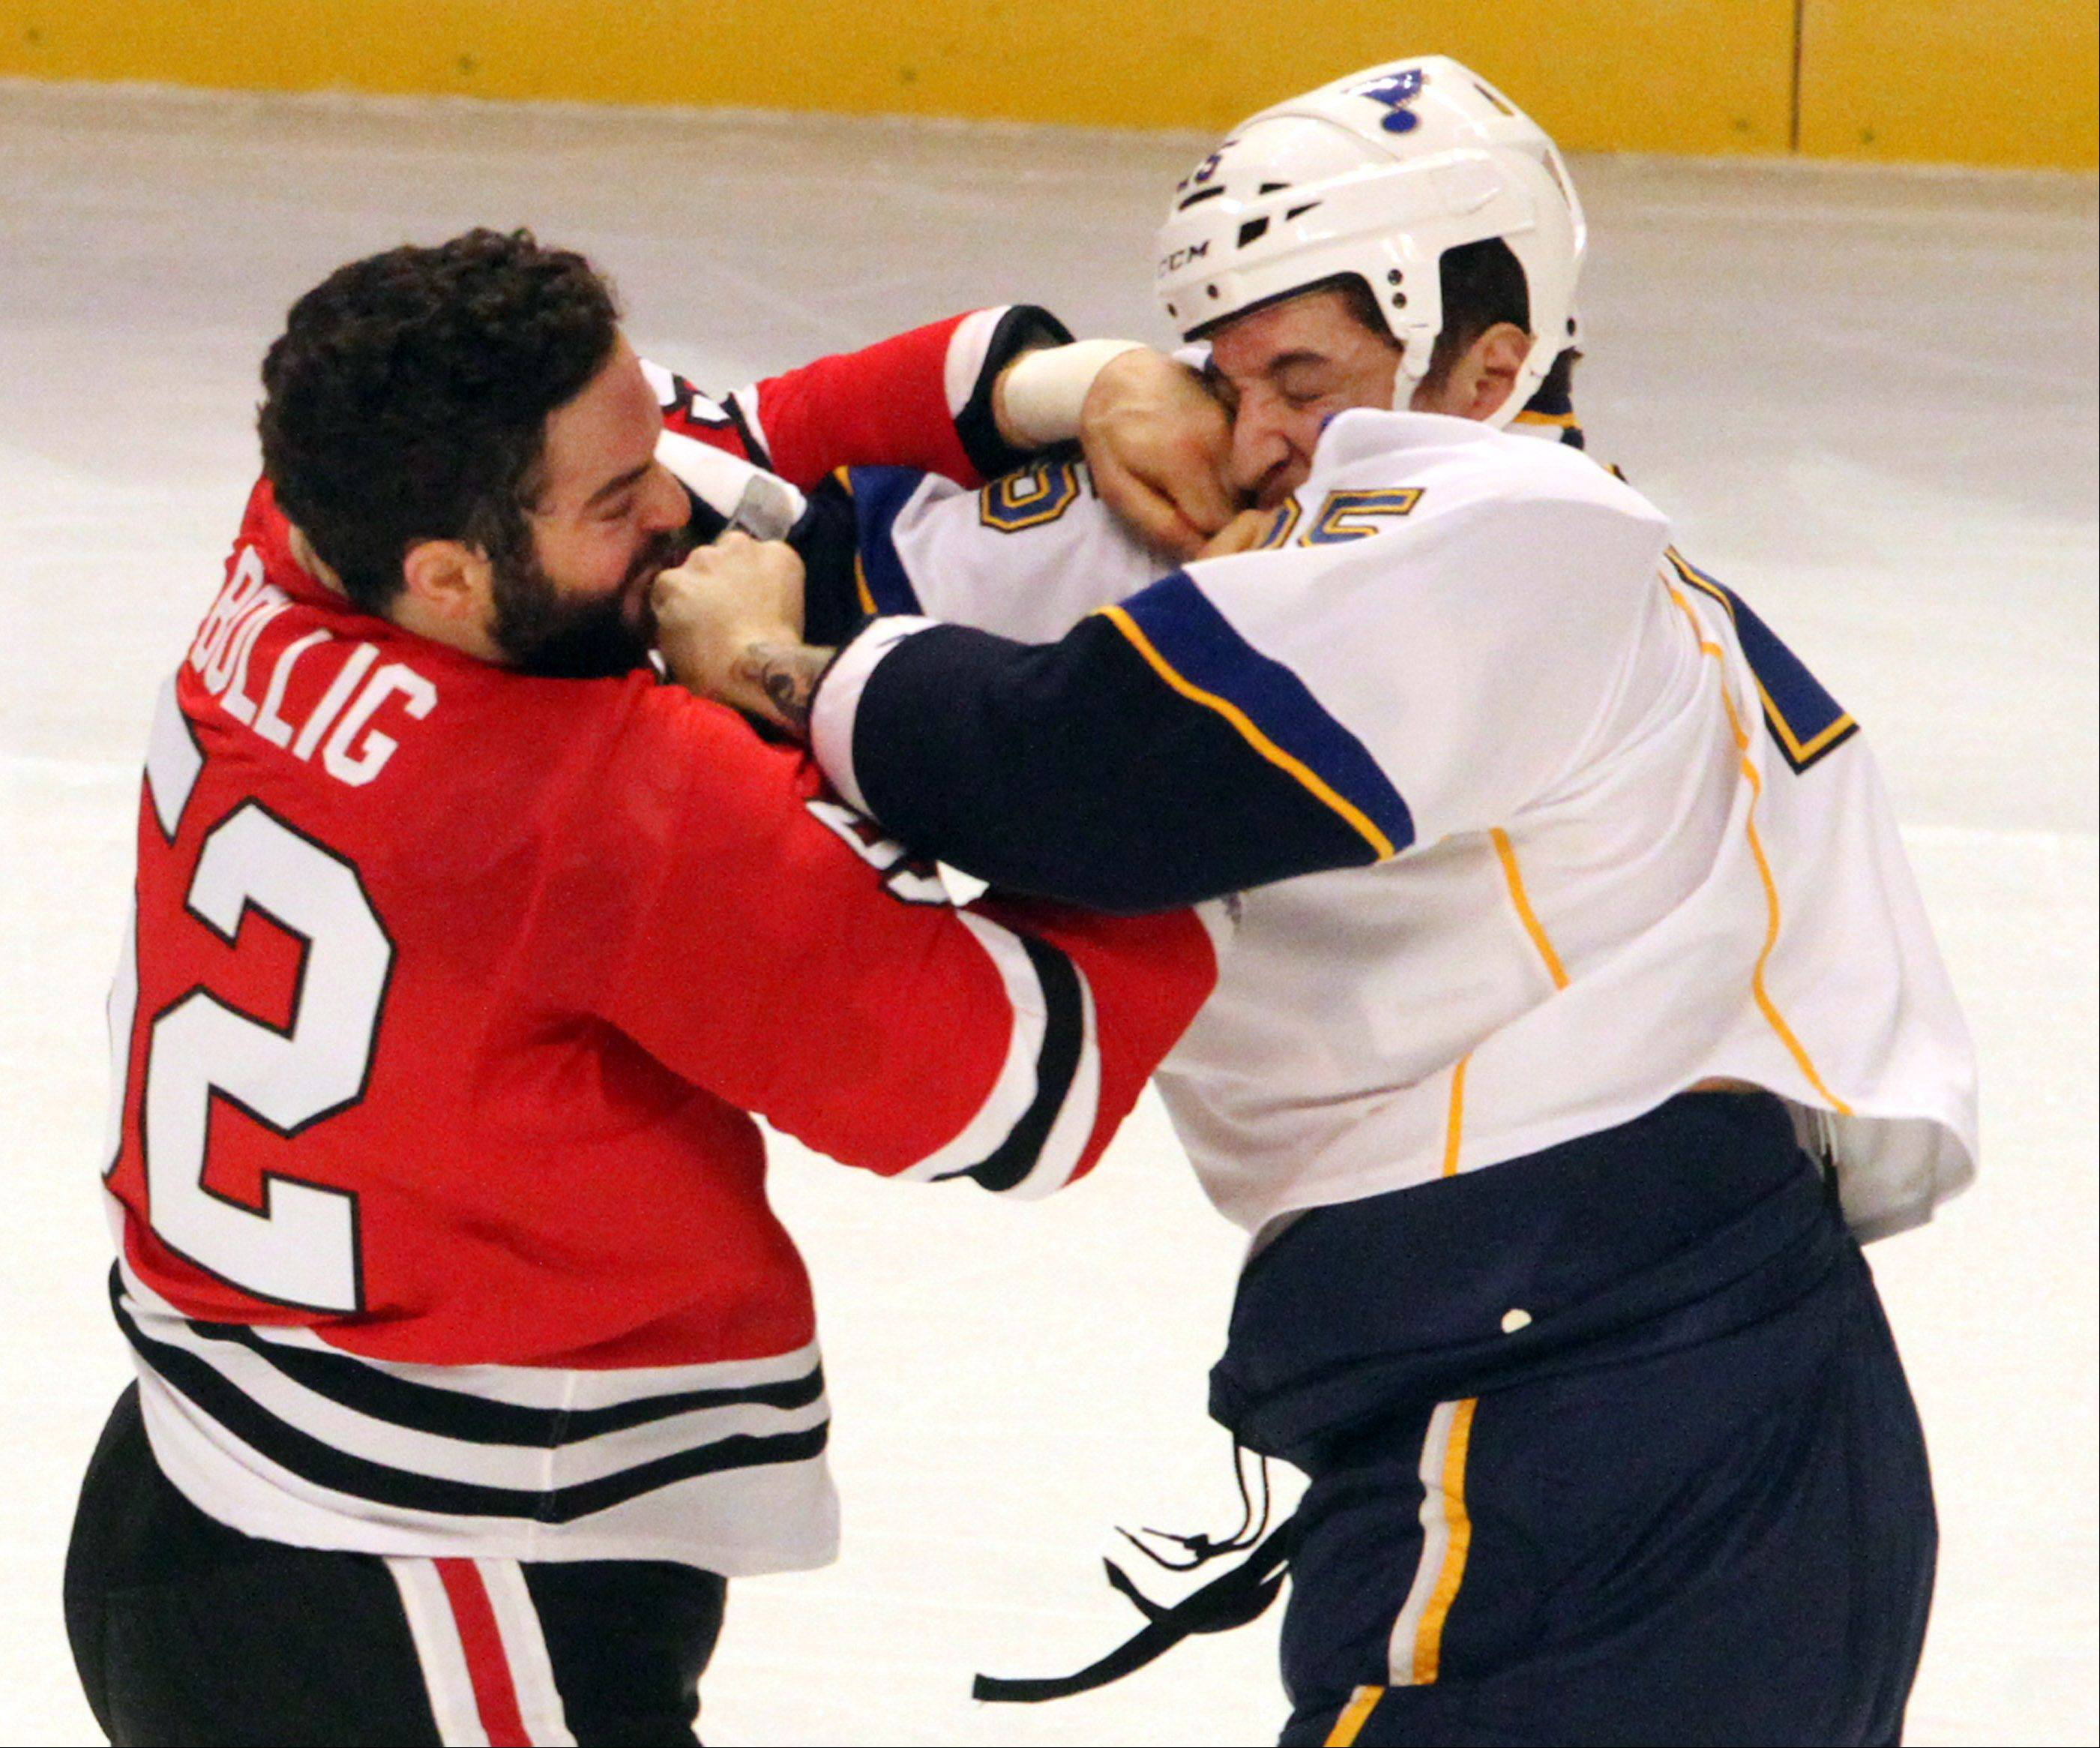 Chicago Blackhawks left wing Brandon Bollig lands a punch in a fight with St. Louis Blues right wing Chris Stewart during the first period .